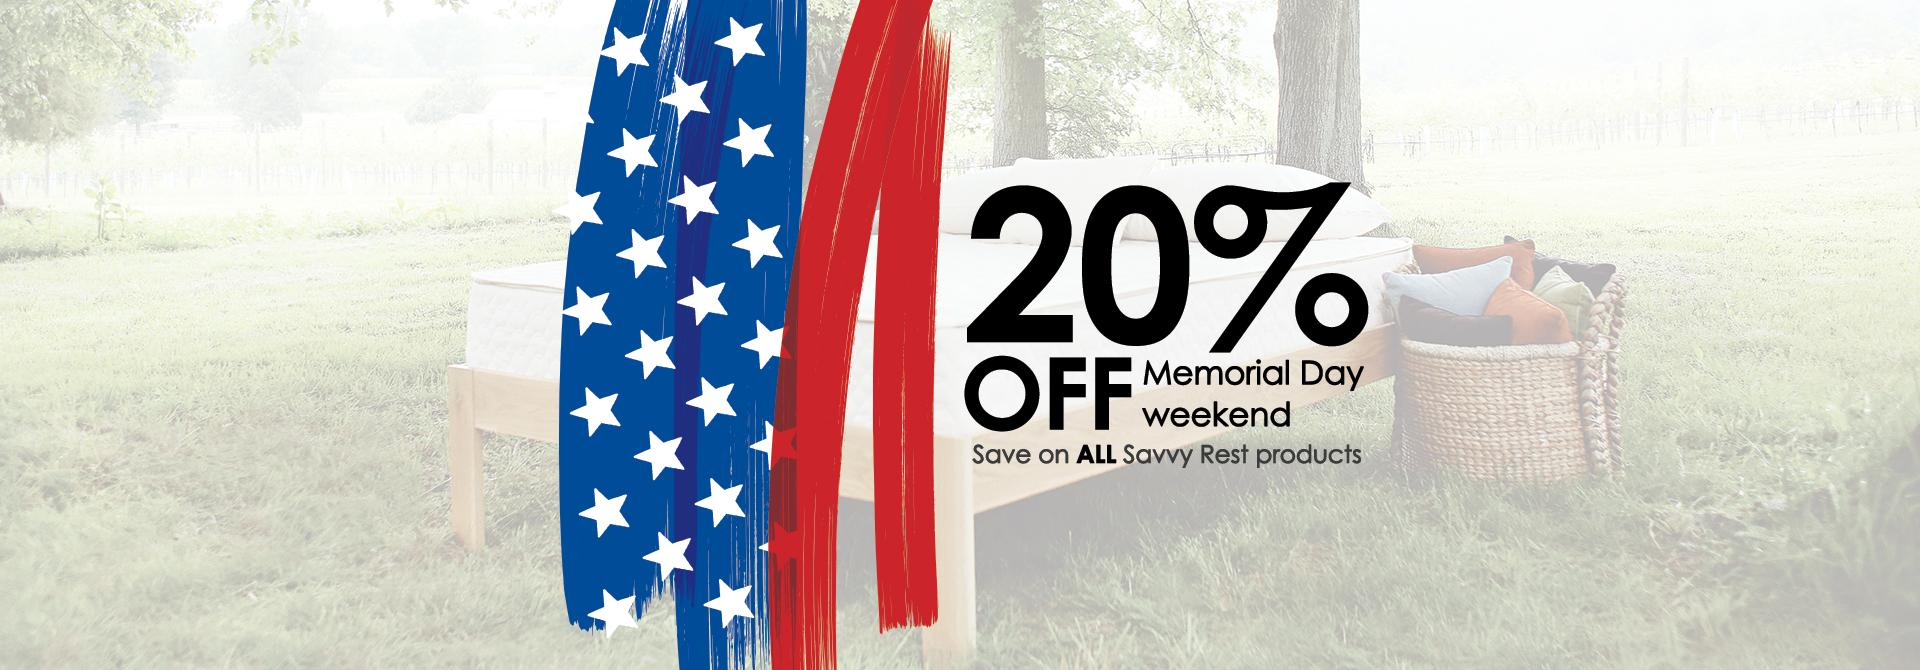 Savvy Rest Memorial Day sale